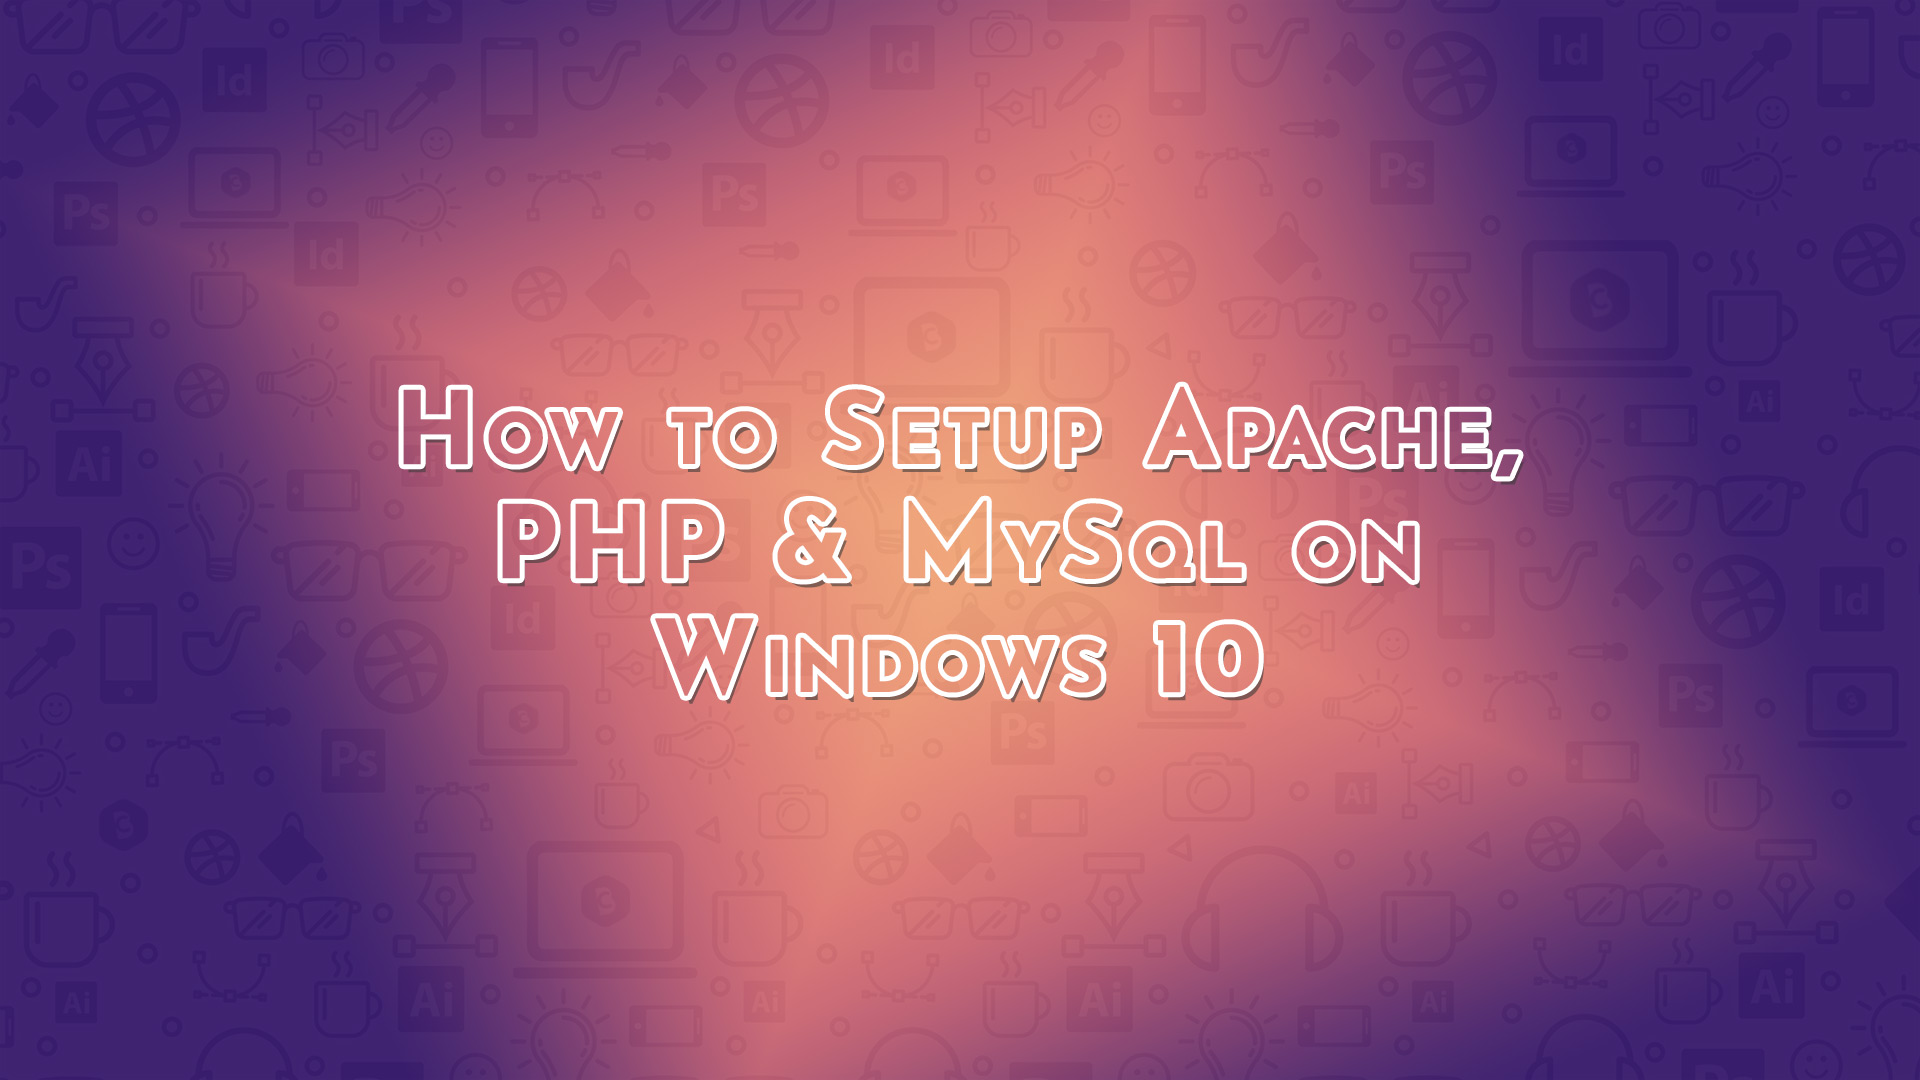 How to Setup Apache, PHP & MySql on Windows 10 - Code Briefly